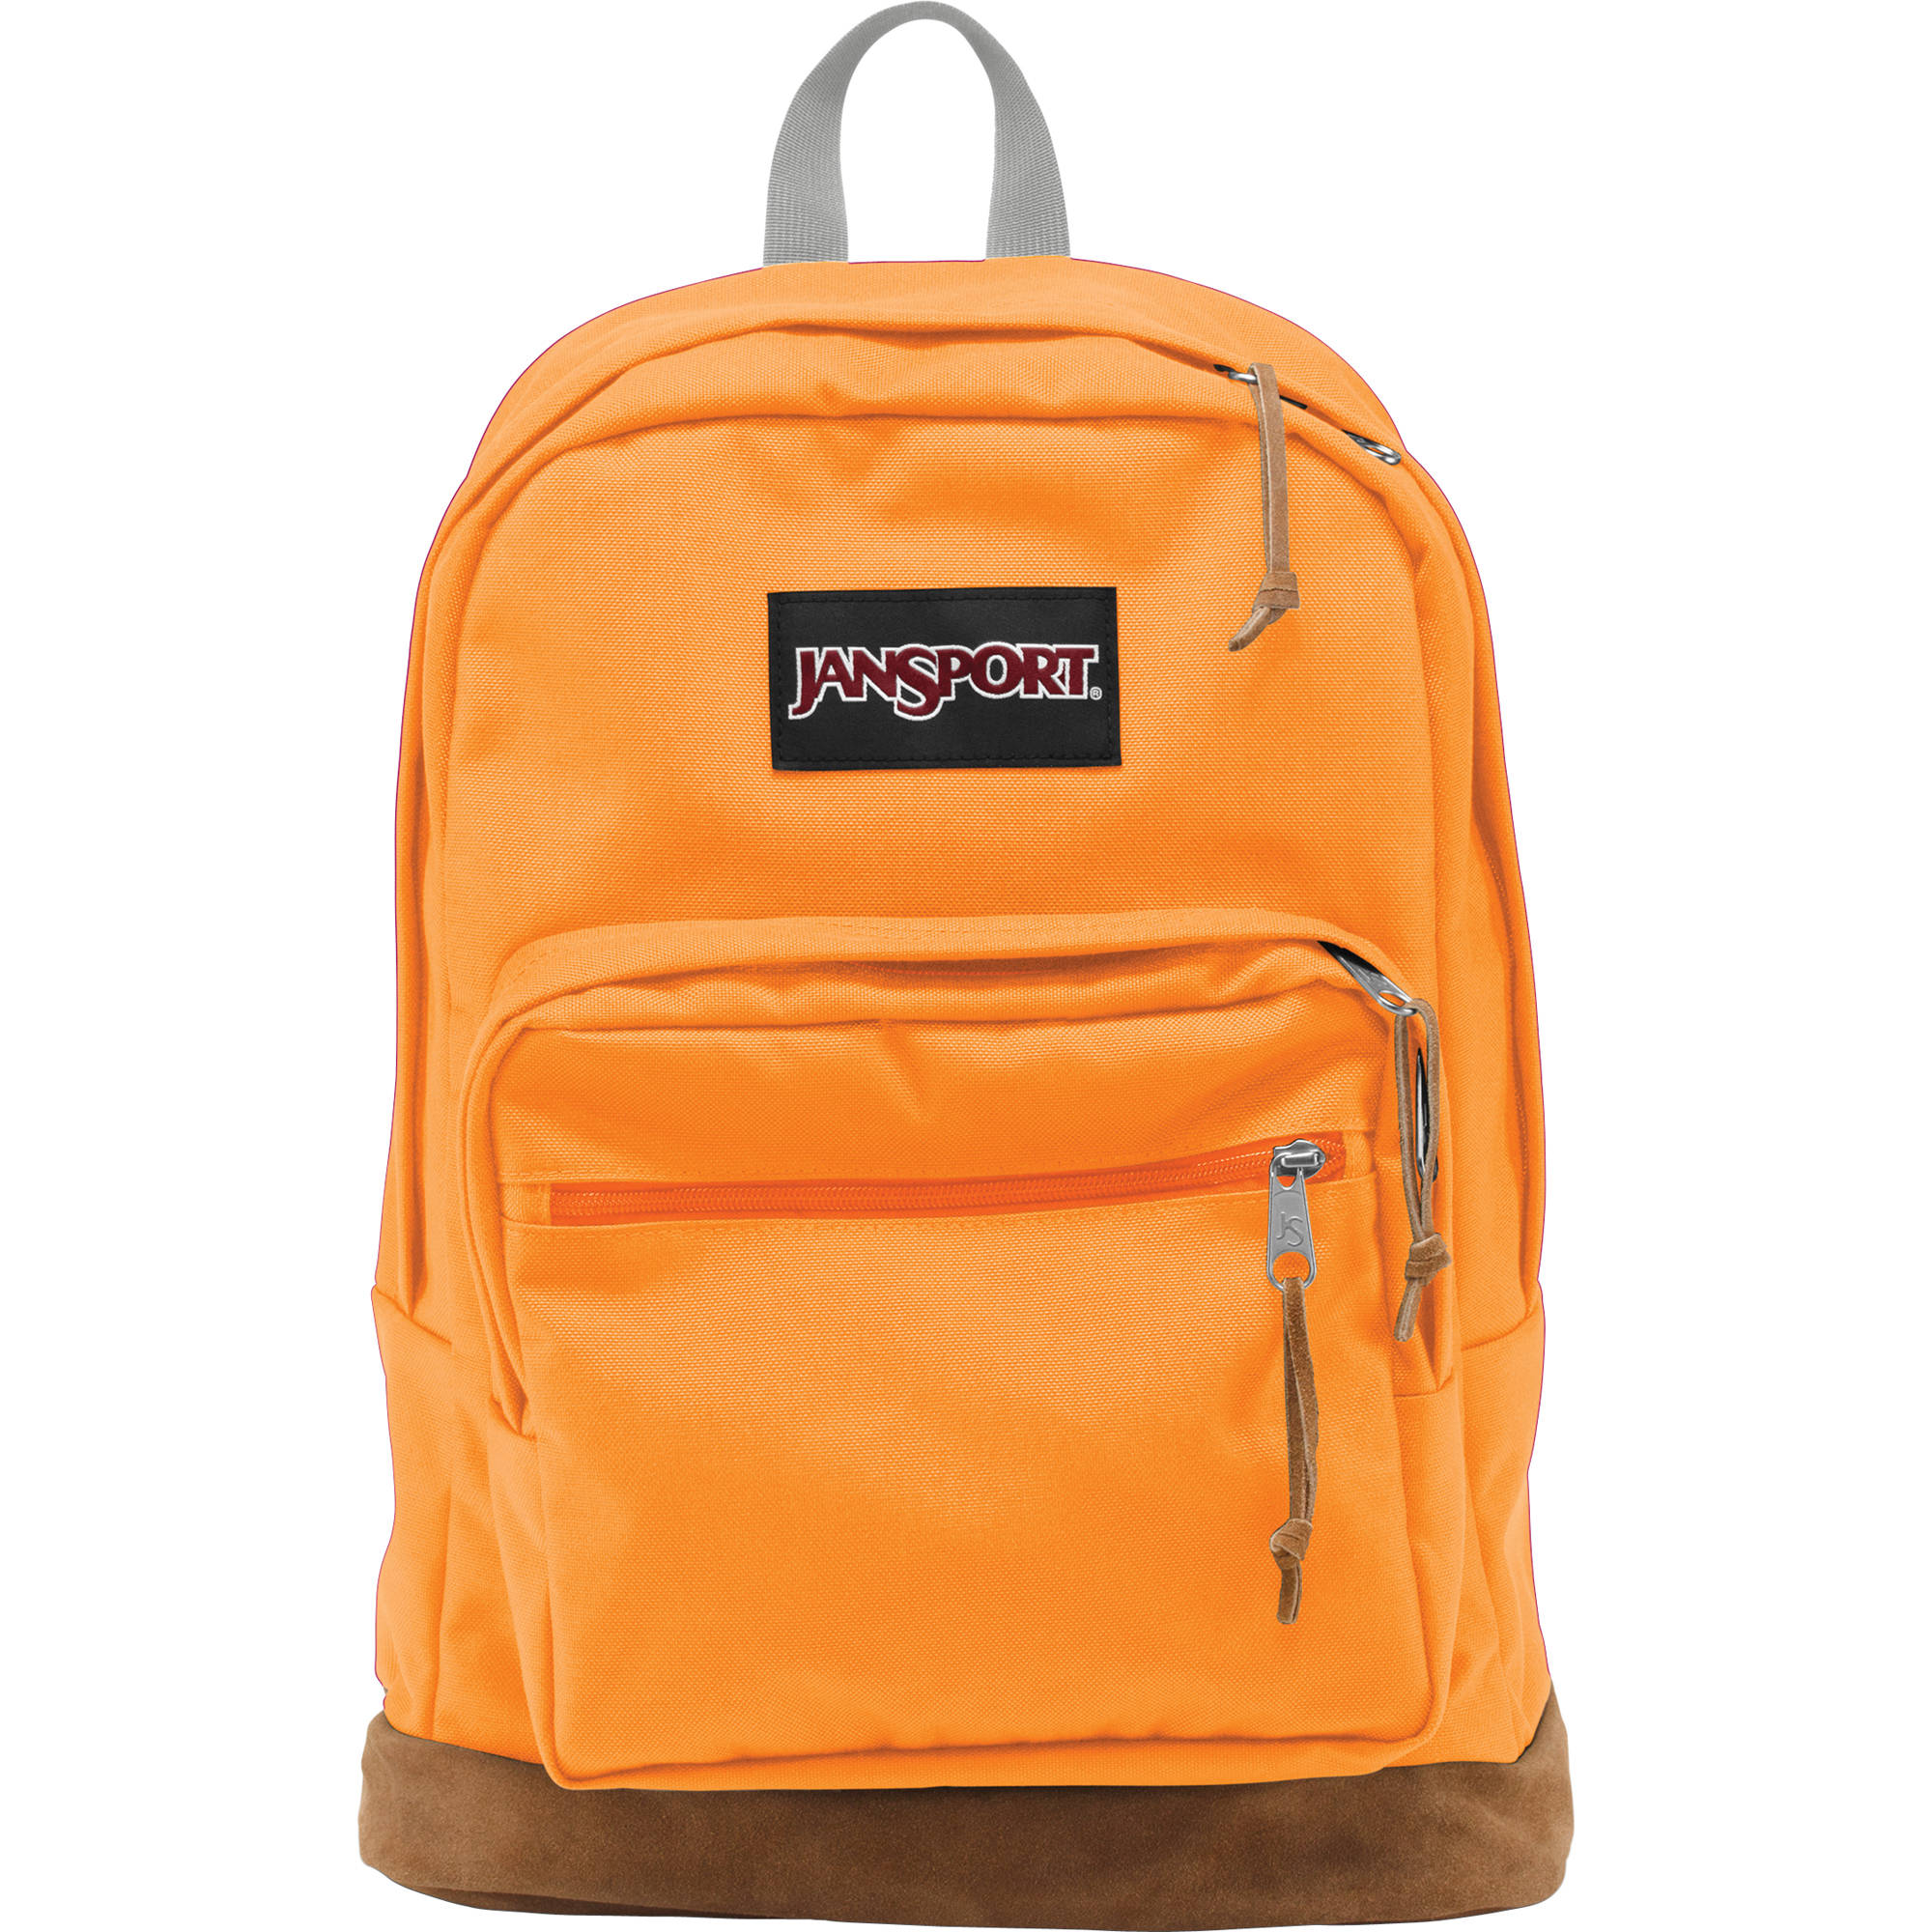 JanSport Right Pack Backpack (Orange Gold) TYP701E B&H Photo